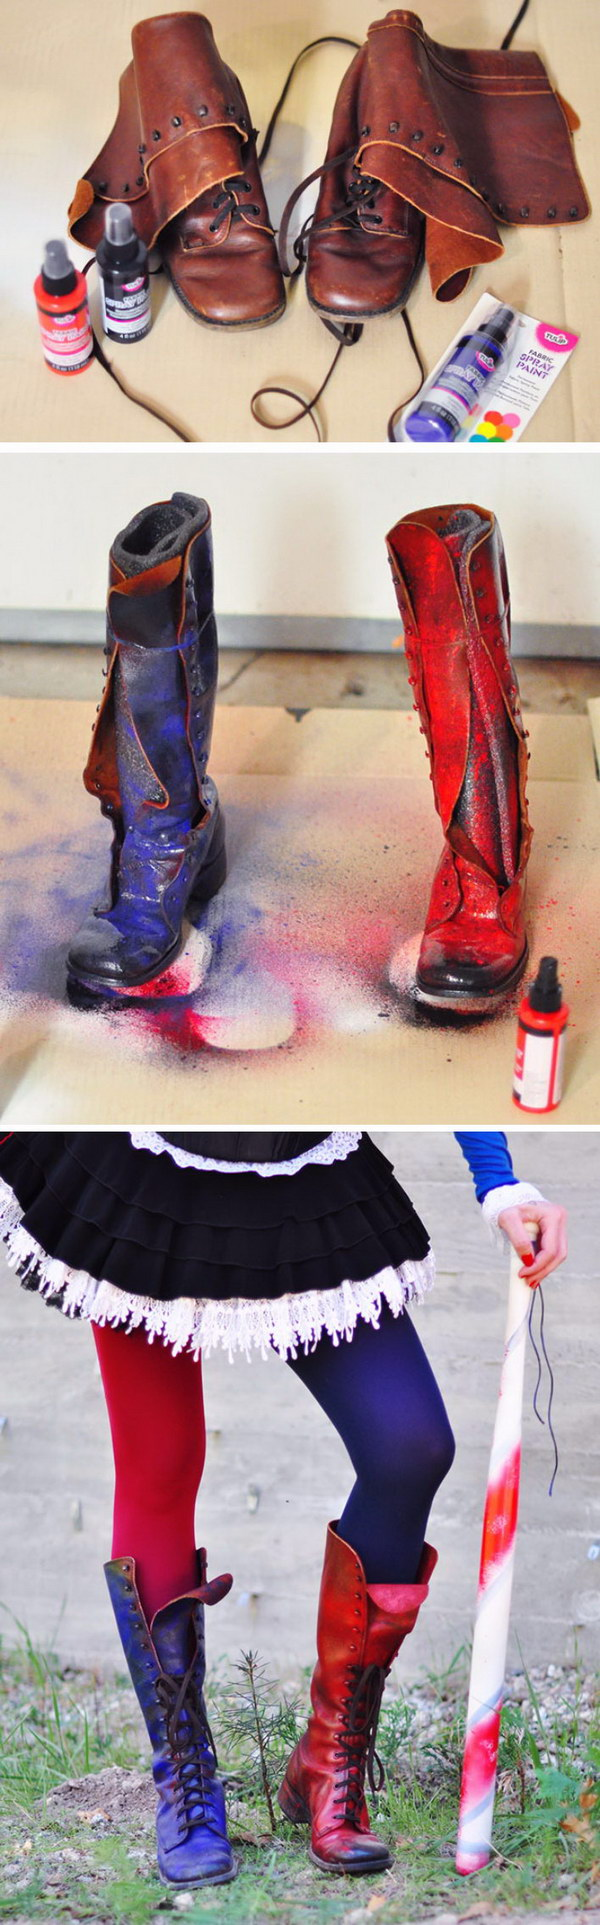 20 Amazing Harley Quinn Costume Ideas Hative